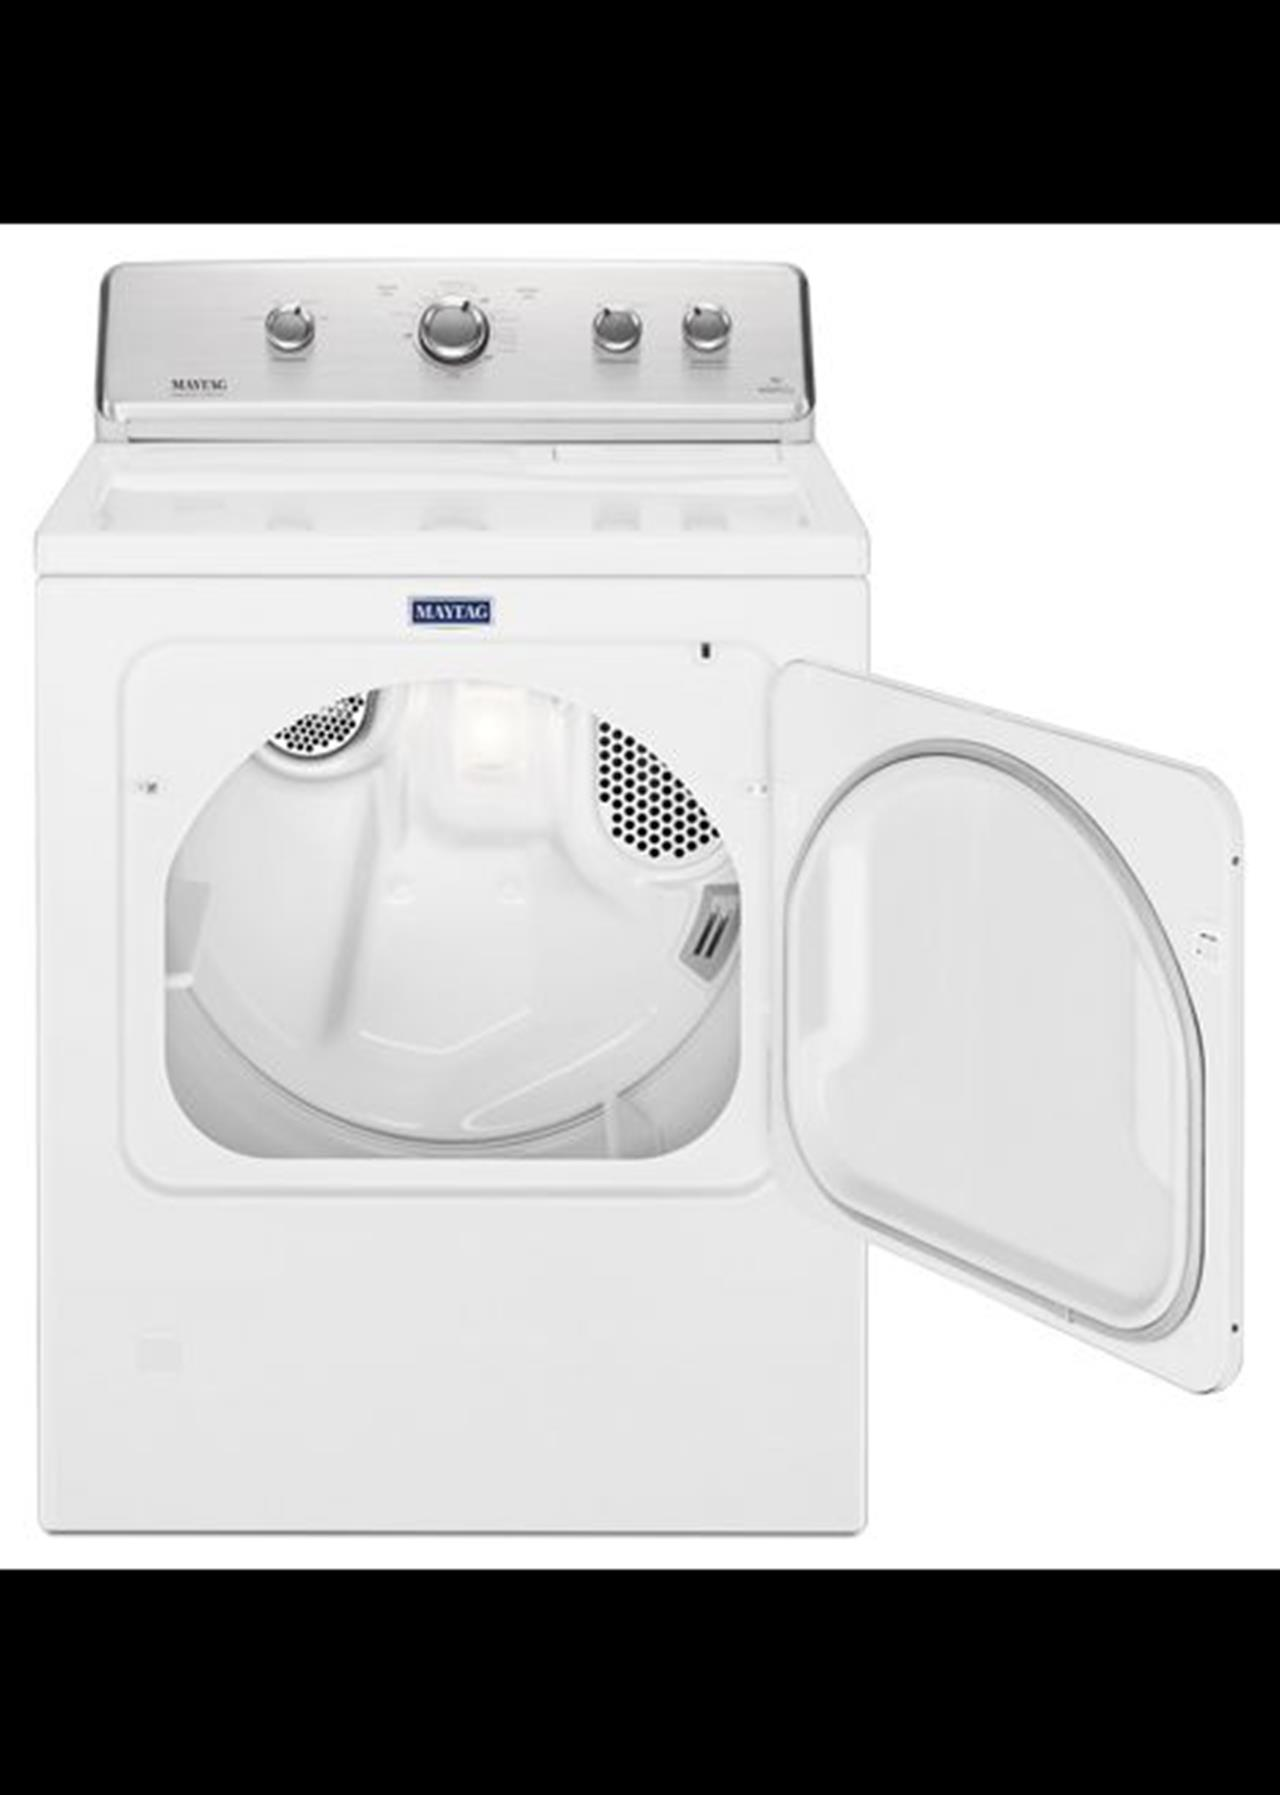 Sargents Maytag Home Appliance Sales and Service | Reno ...